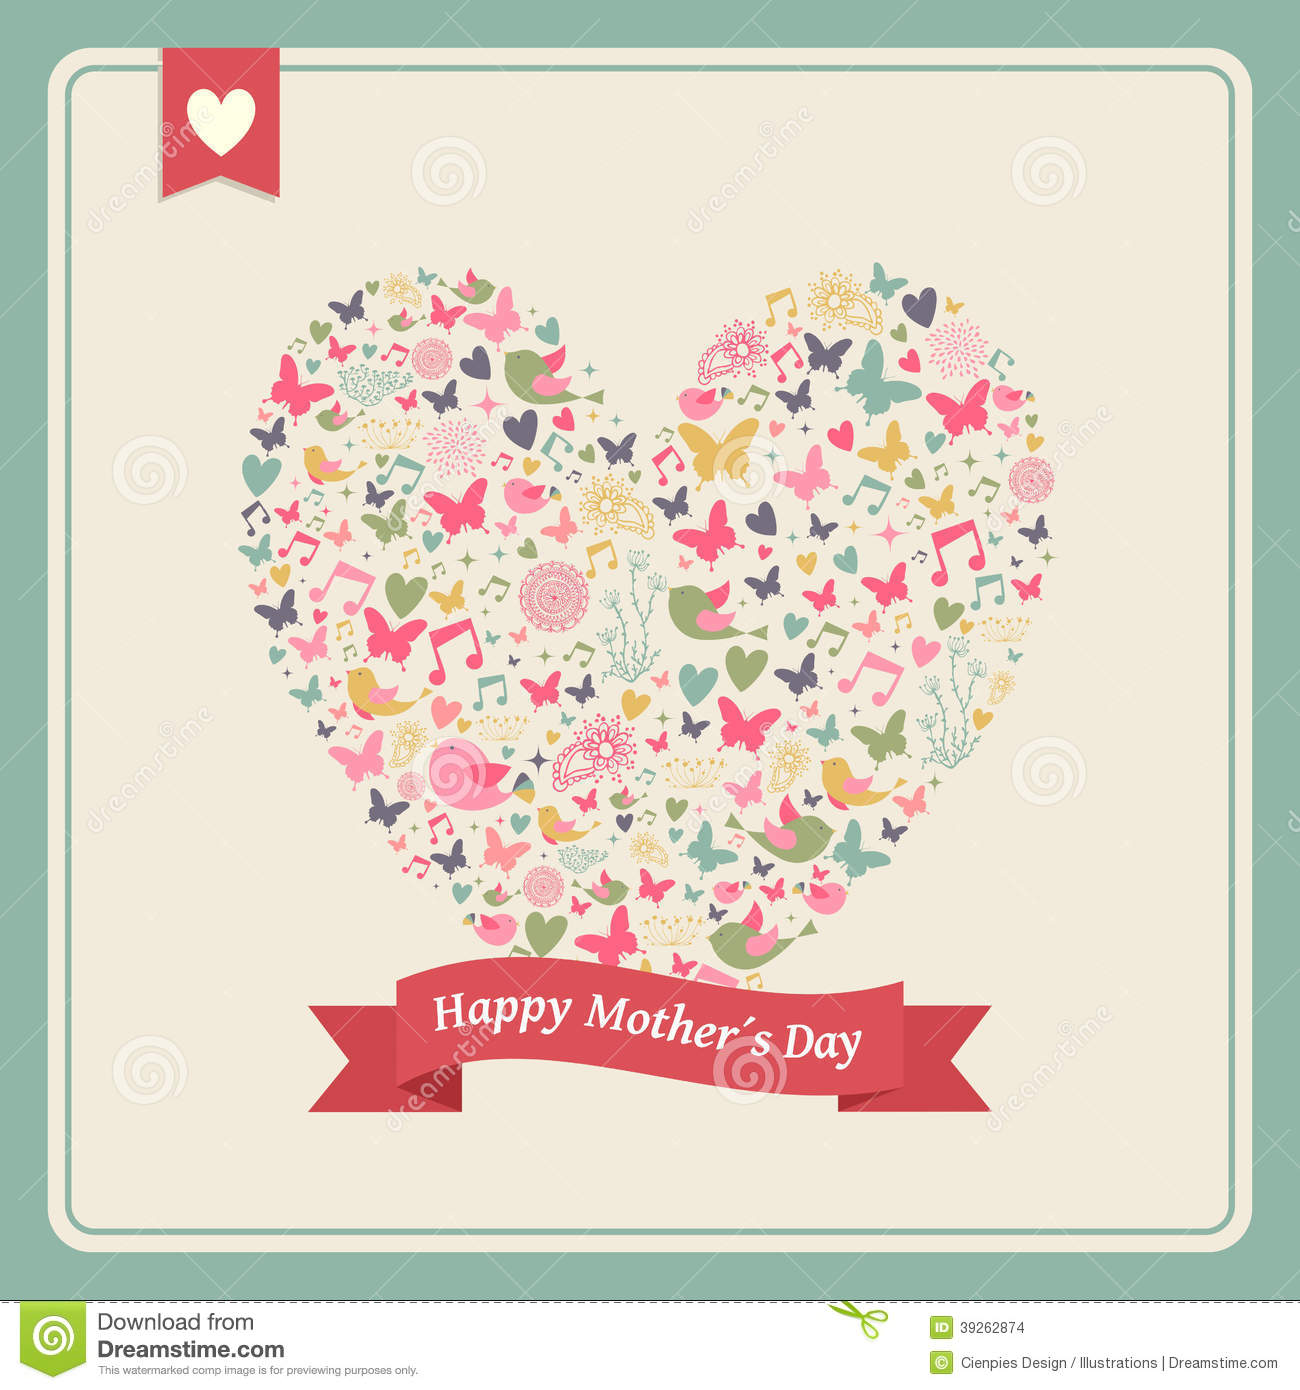 Happy mothers day heart elements composition stock vector happy mothers day heart elements composition kristyandbryce Choice Image